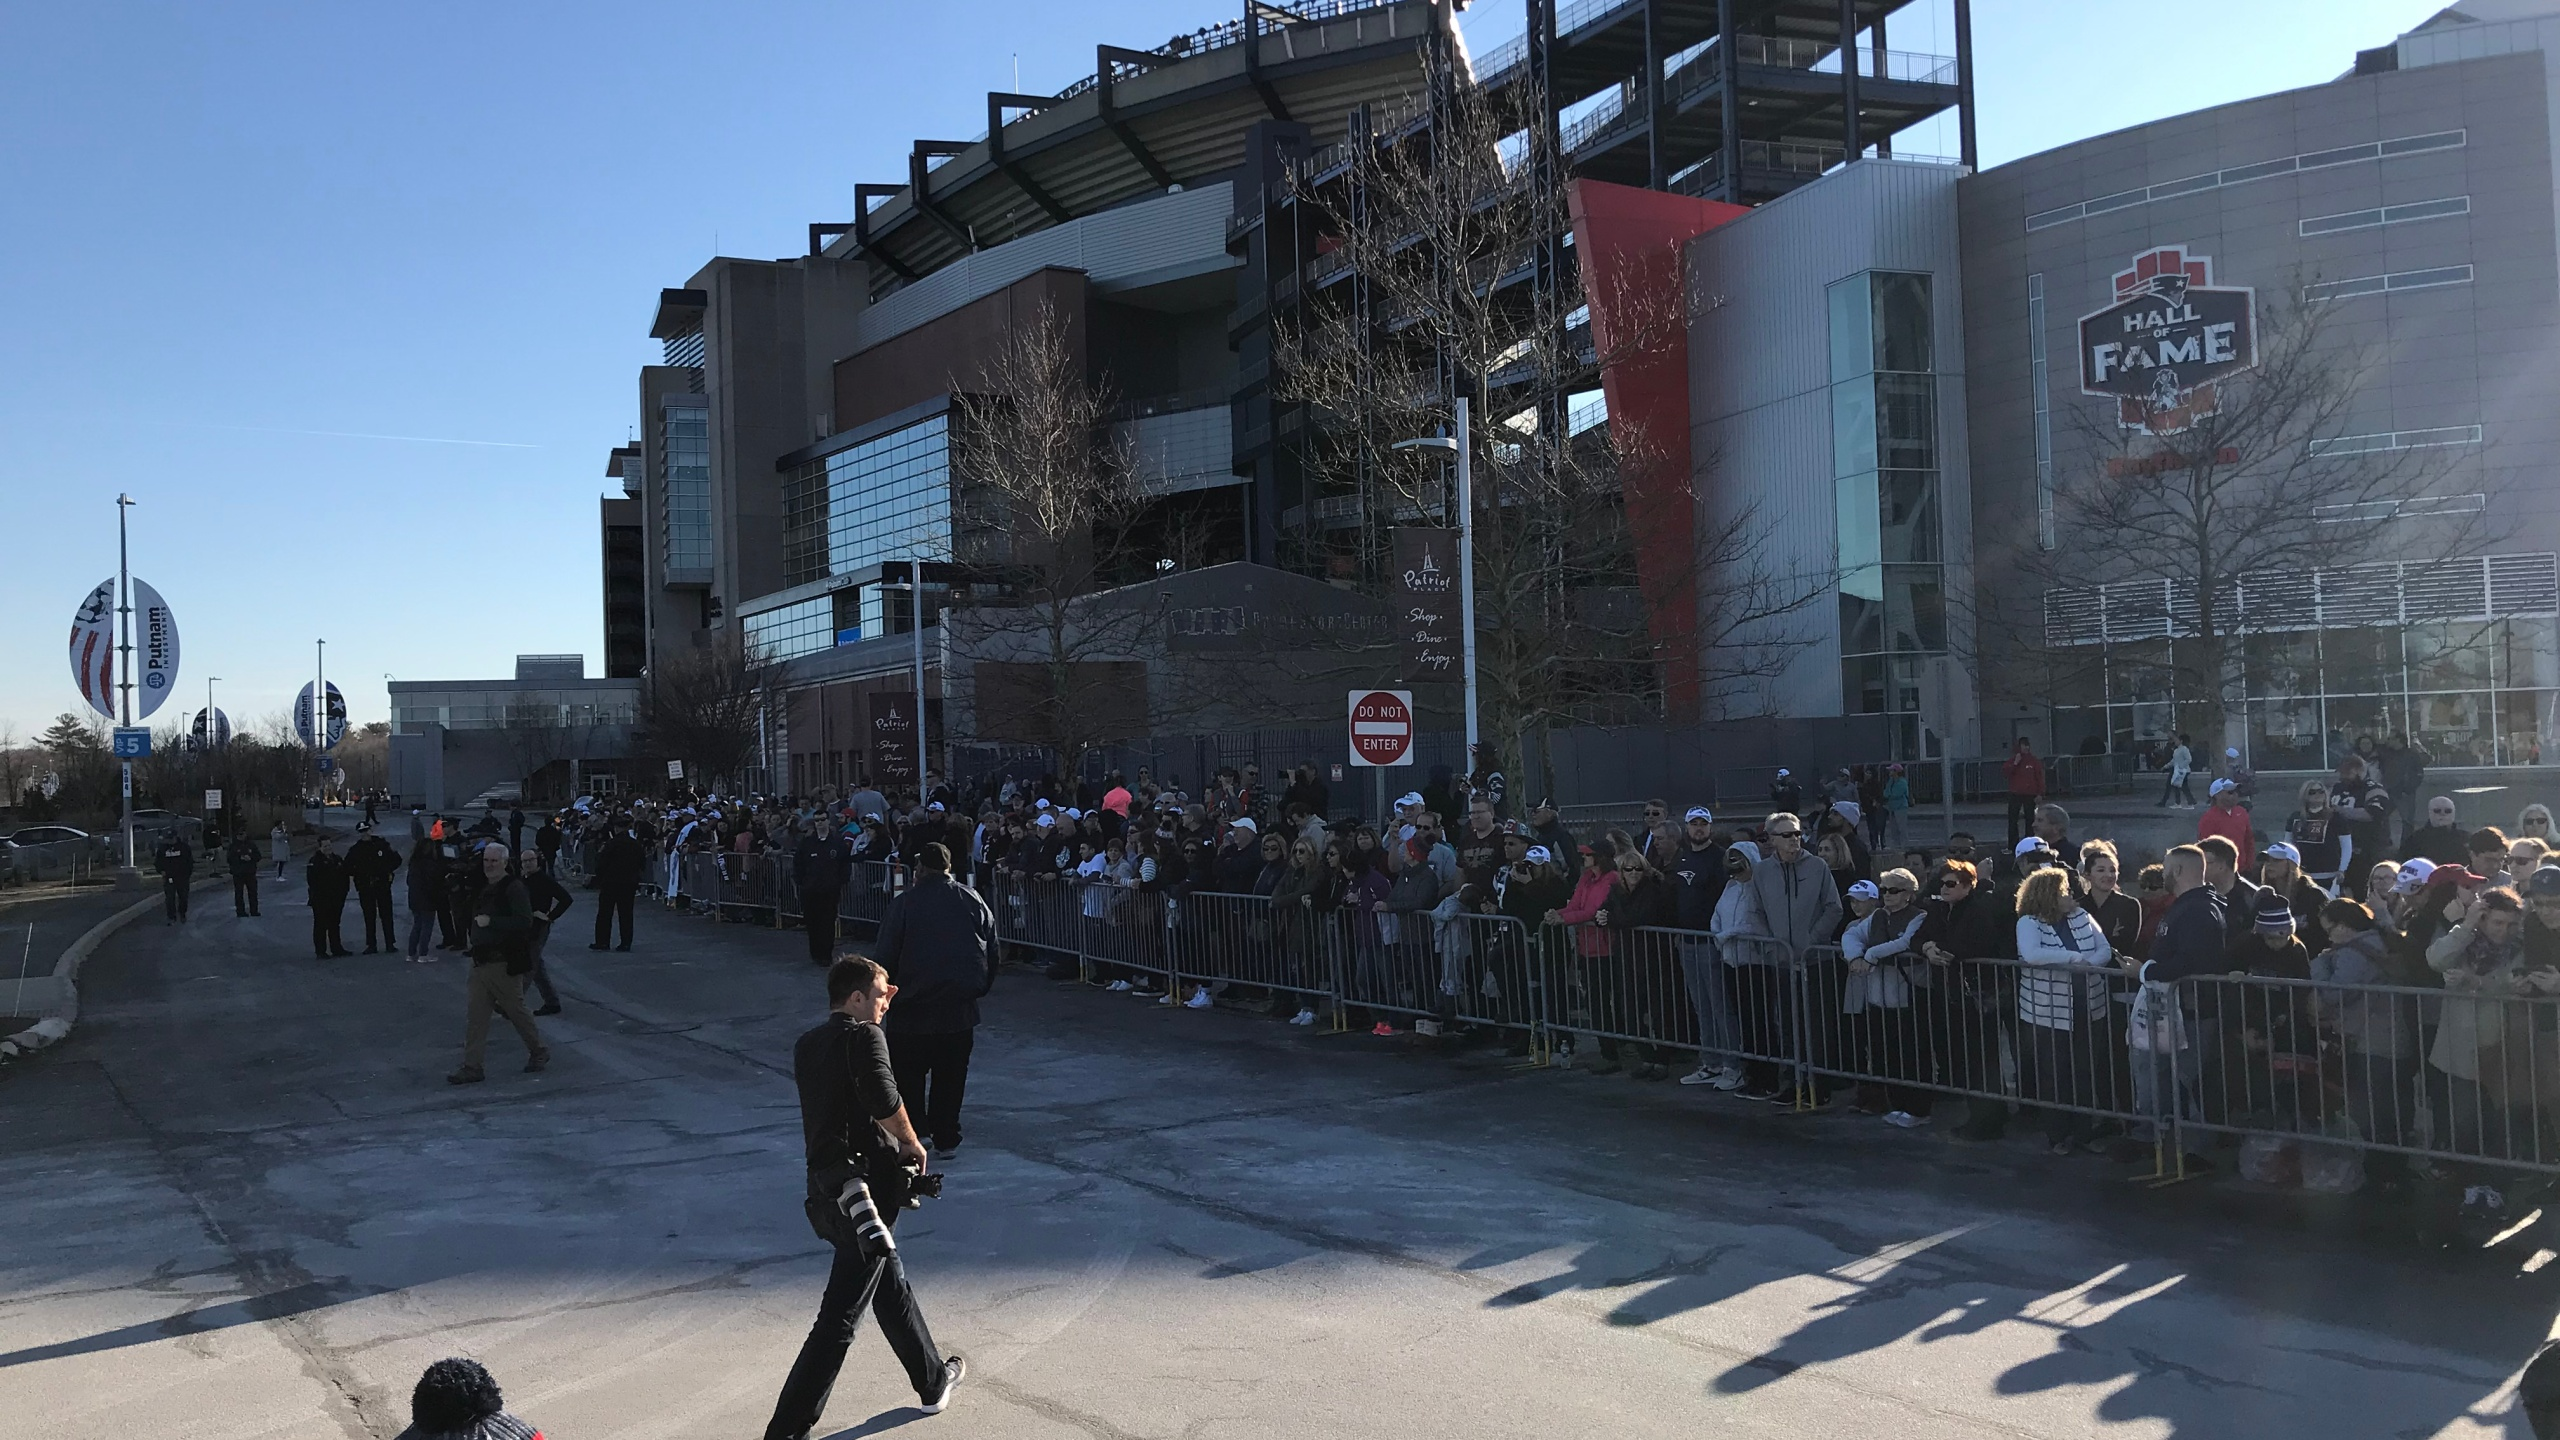 Fans waiting for Patriots to return home to Gillette